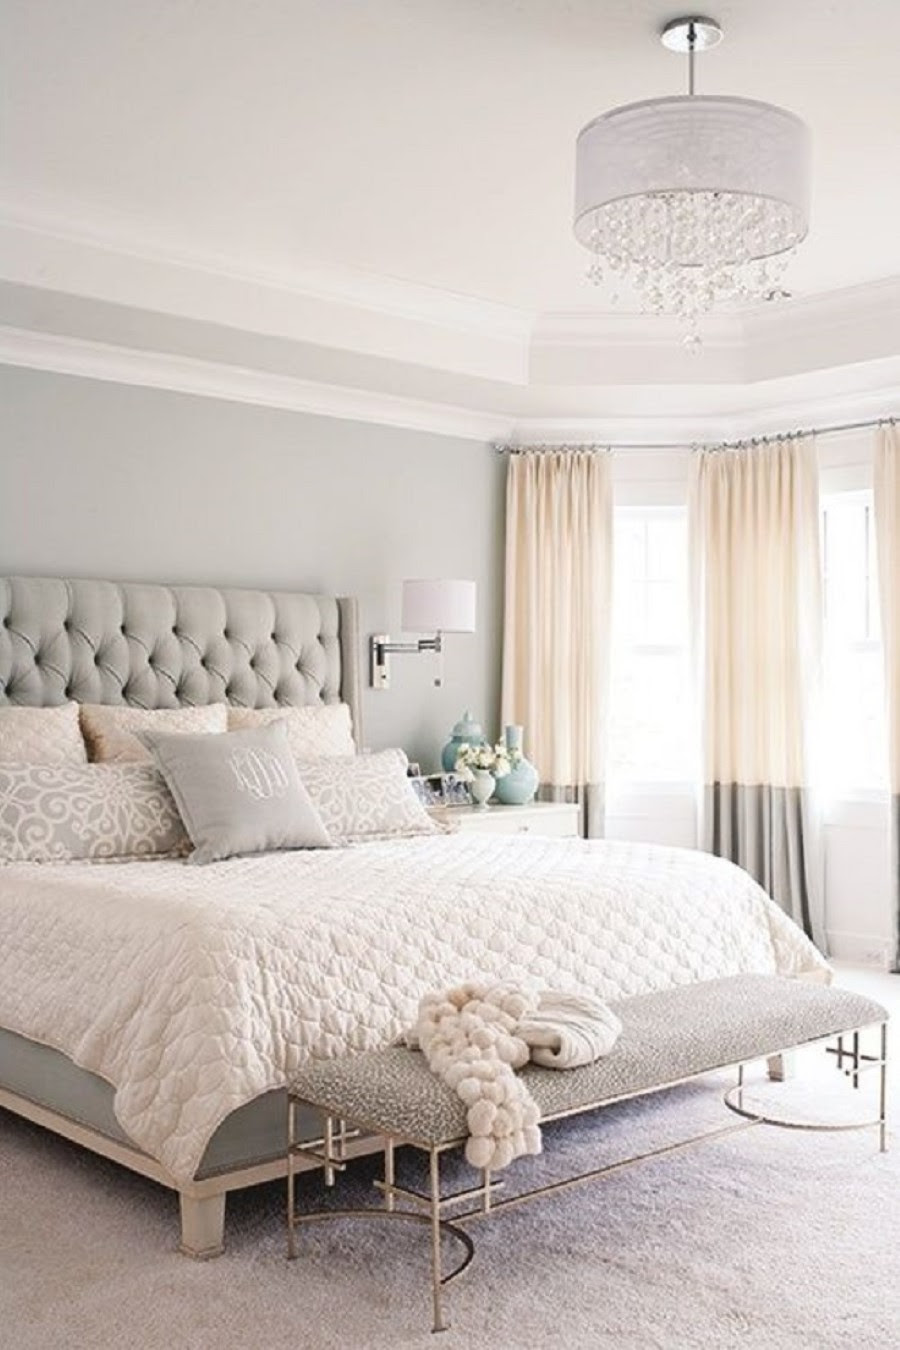 Best Paint Colors for Small Room - Some Tips - HomesFeed